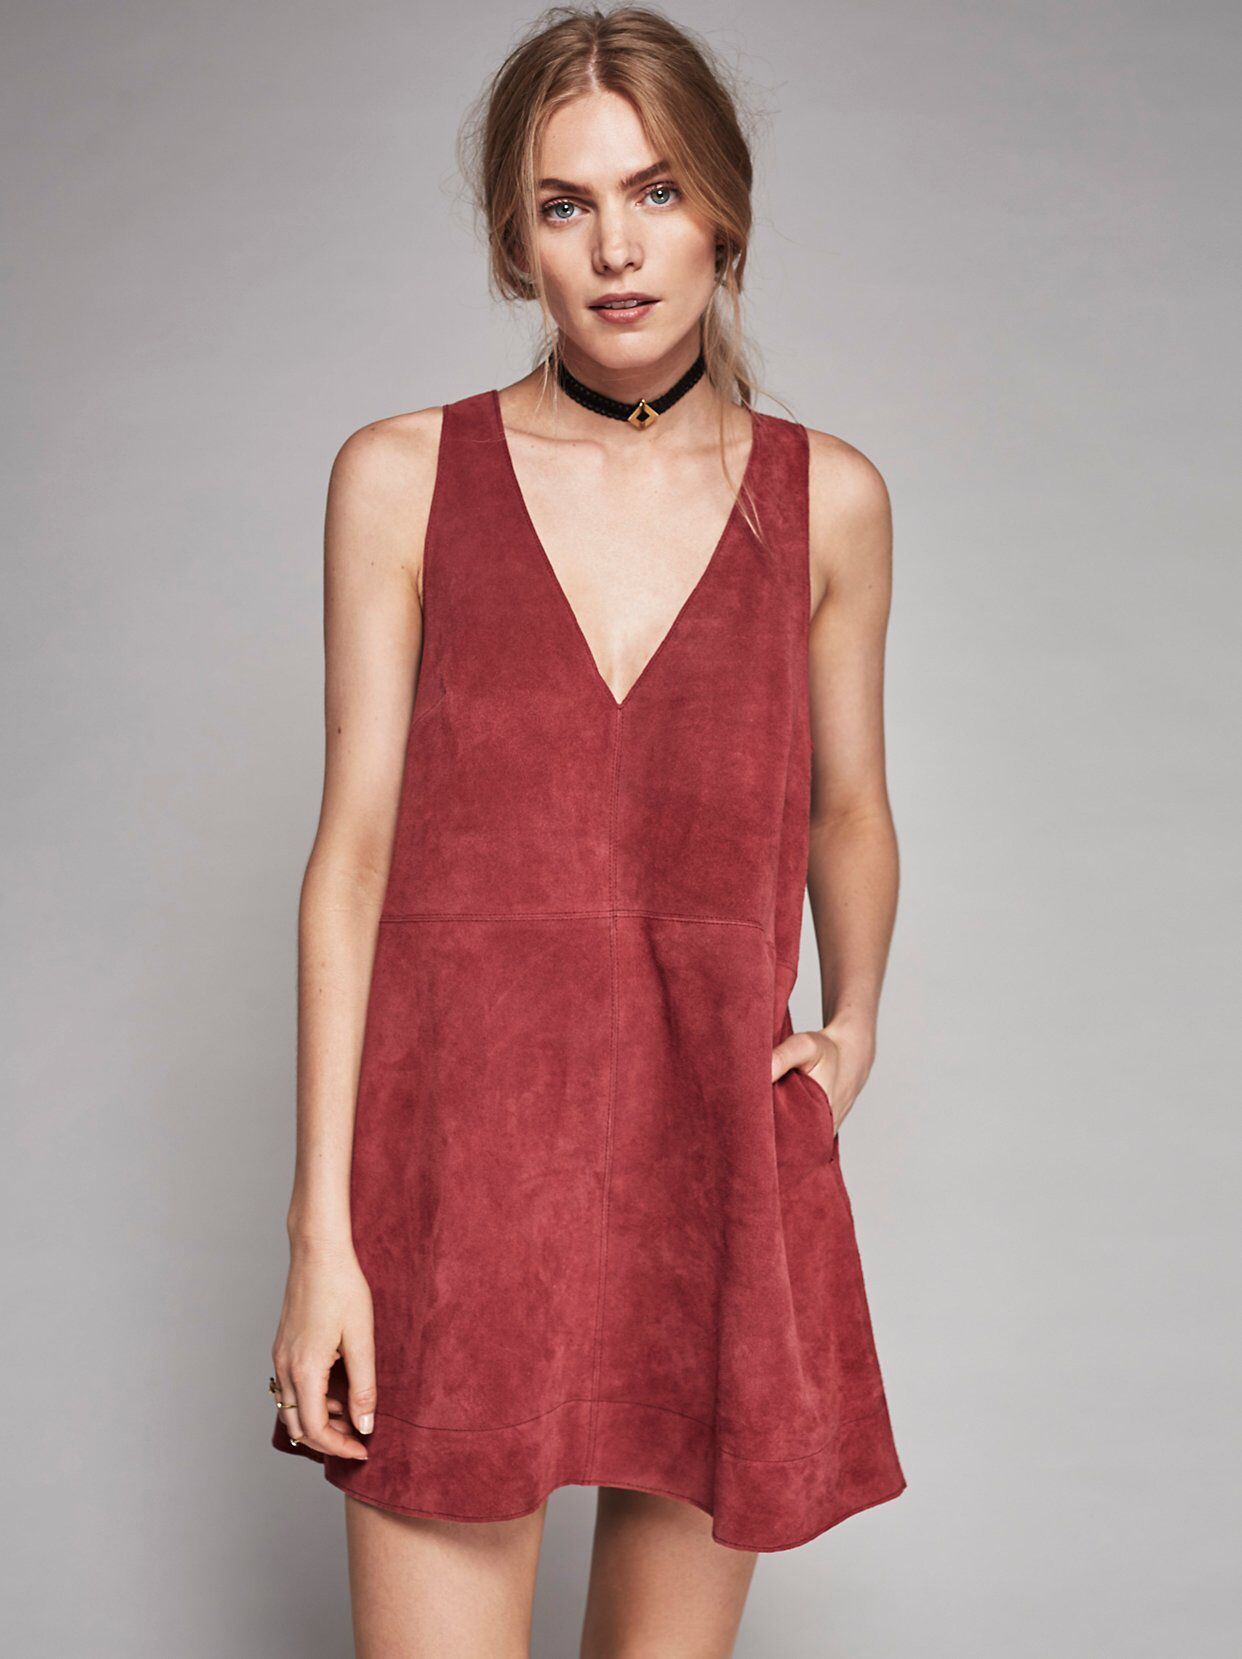 8aeb2f44f2 Retro Love Suede Dress from Free People!